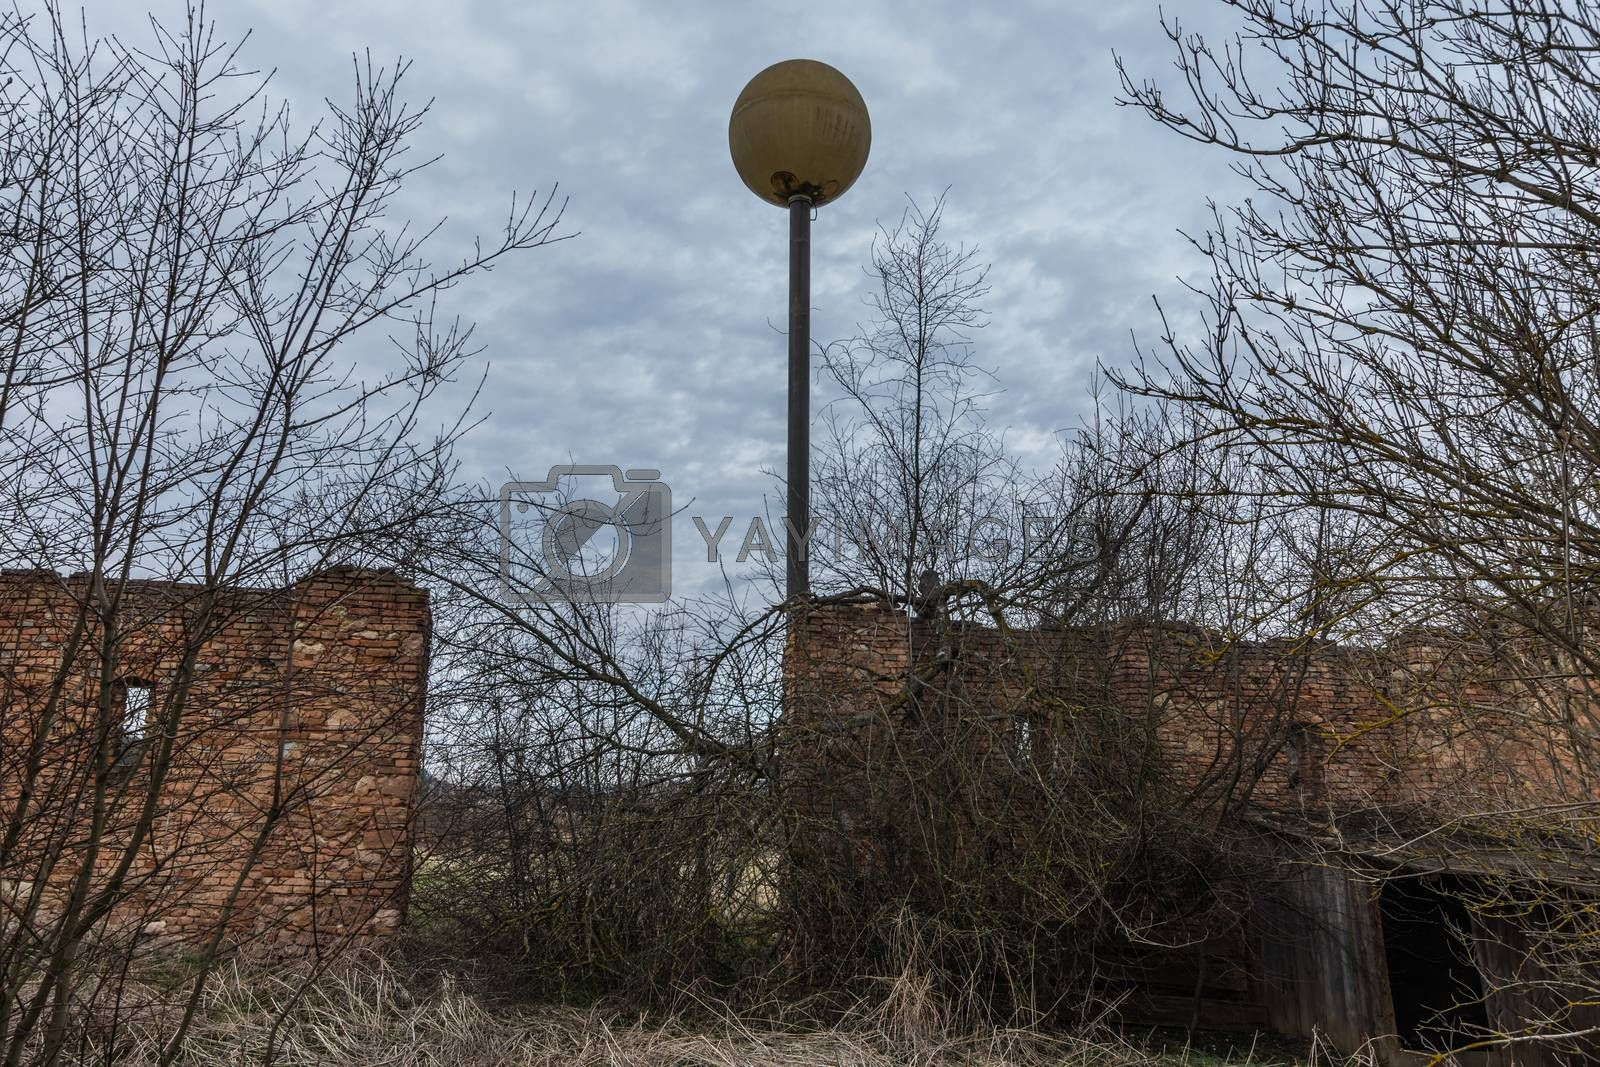 high round lantern with a wall in nature